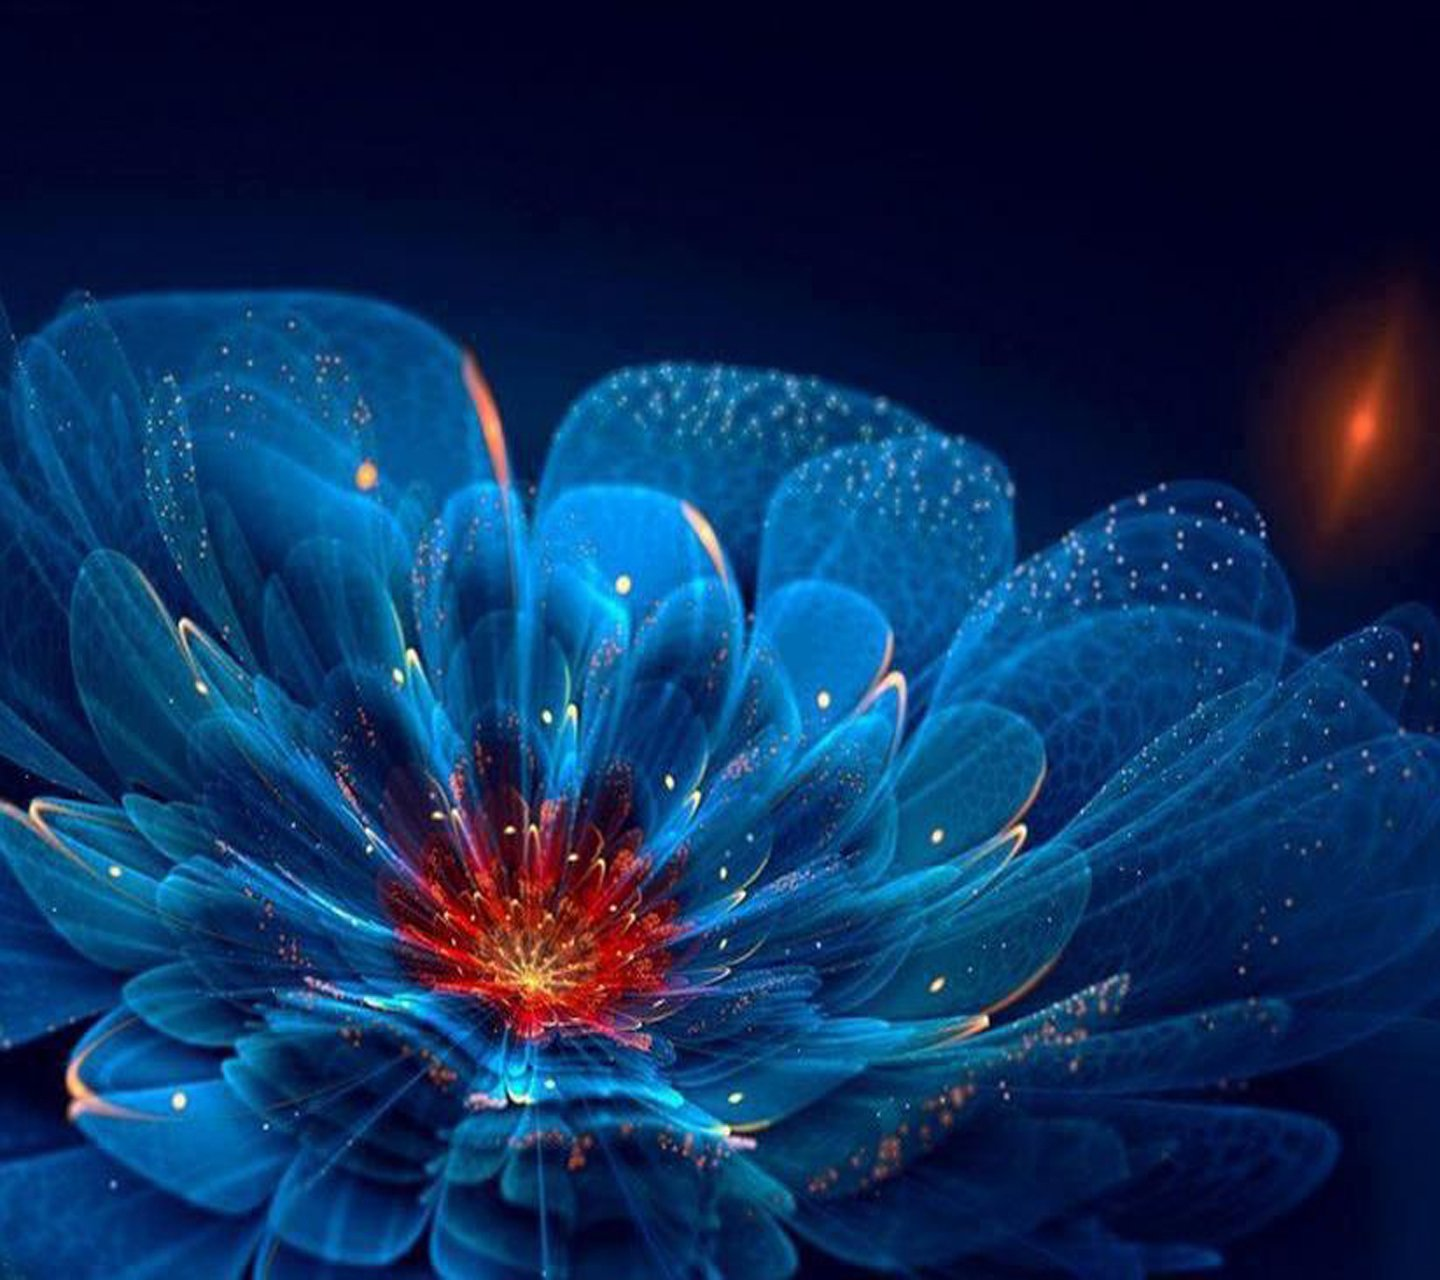 the best 100 hd and qhd wallpapers from 2015 (works for all devices)